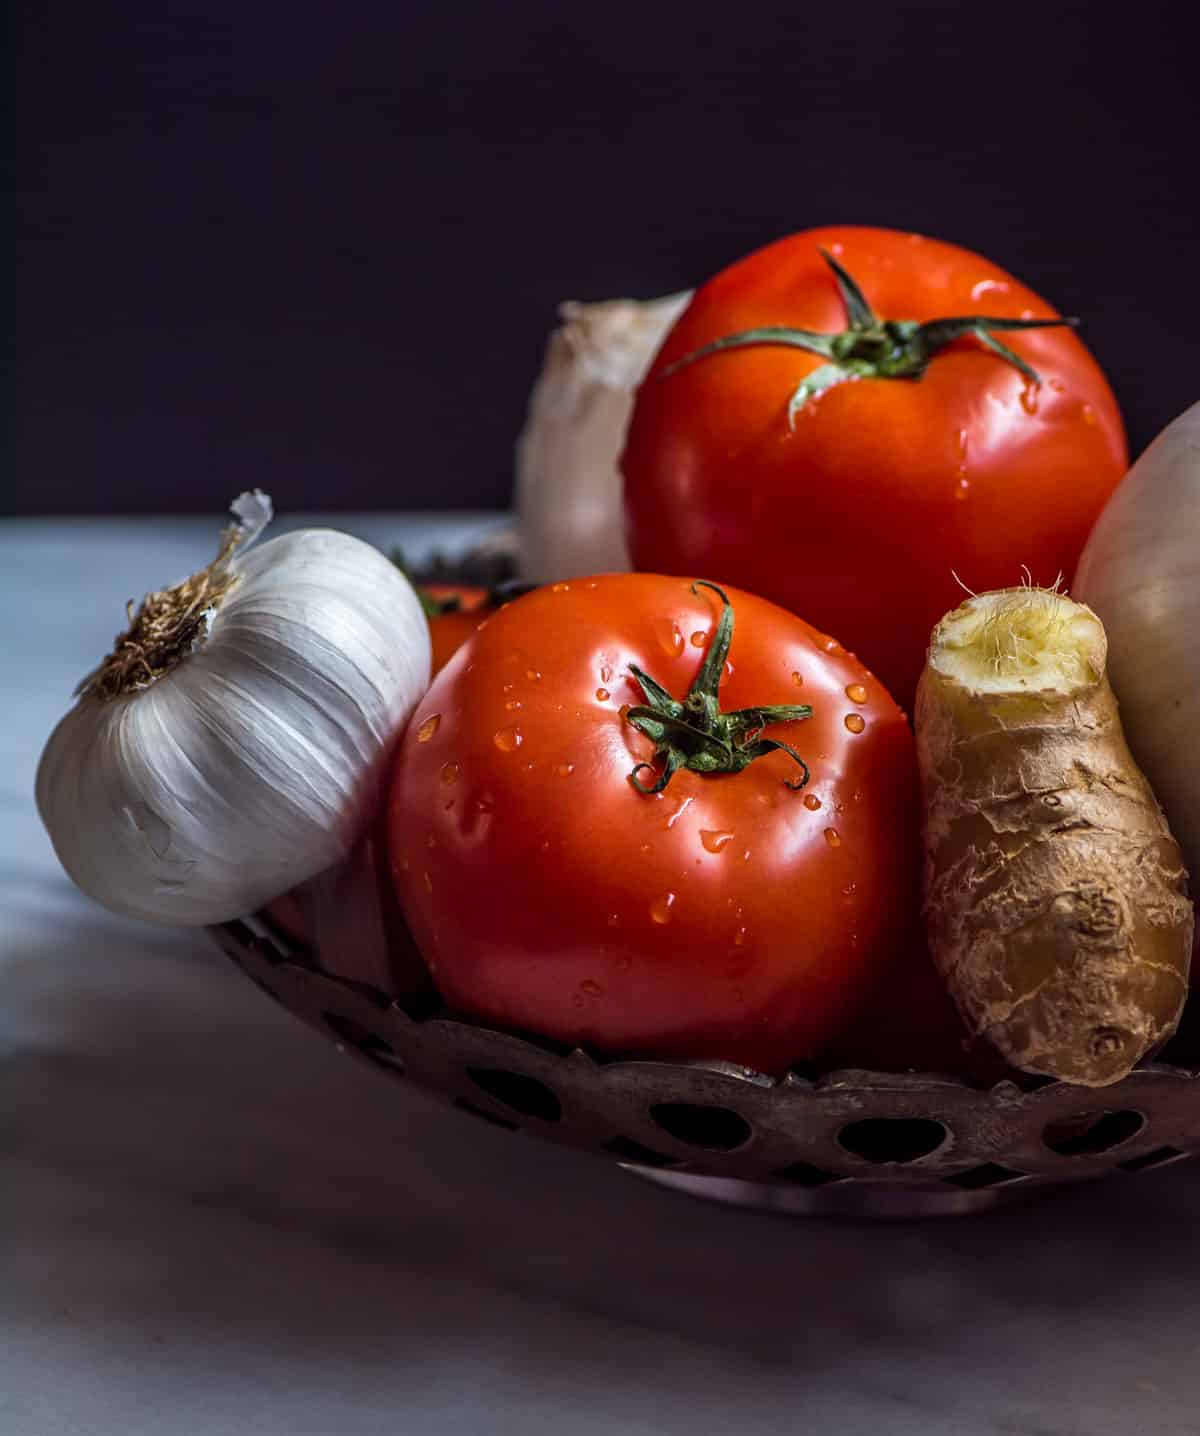 Ingredients used in a curry sauce - tomatoes, onions, ginger, and garlic